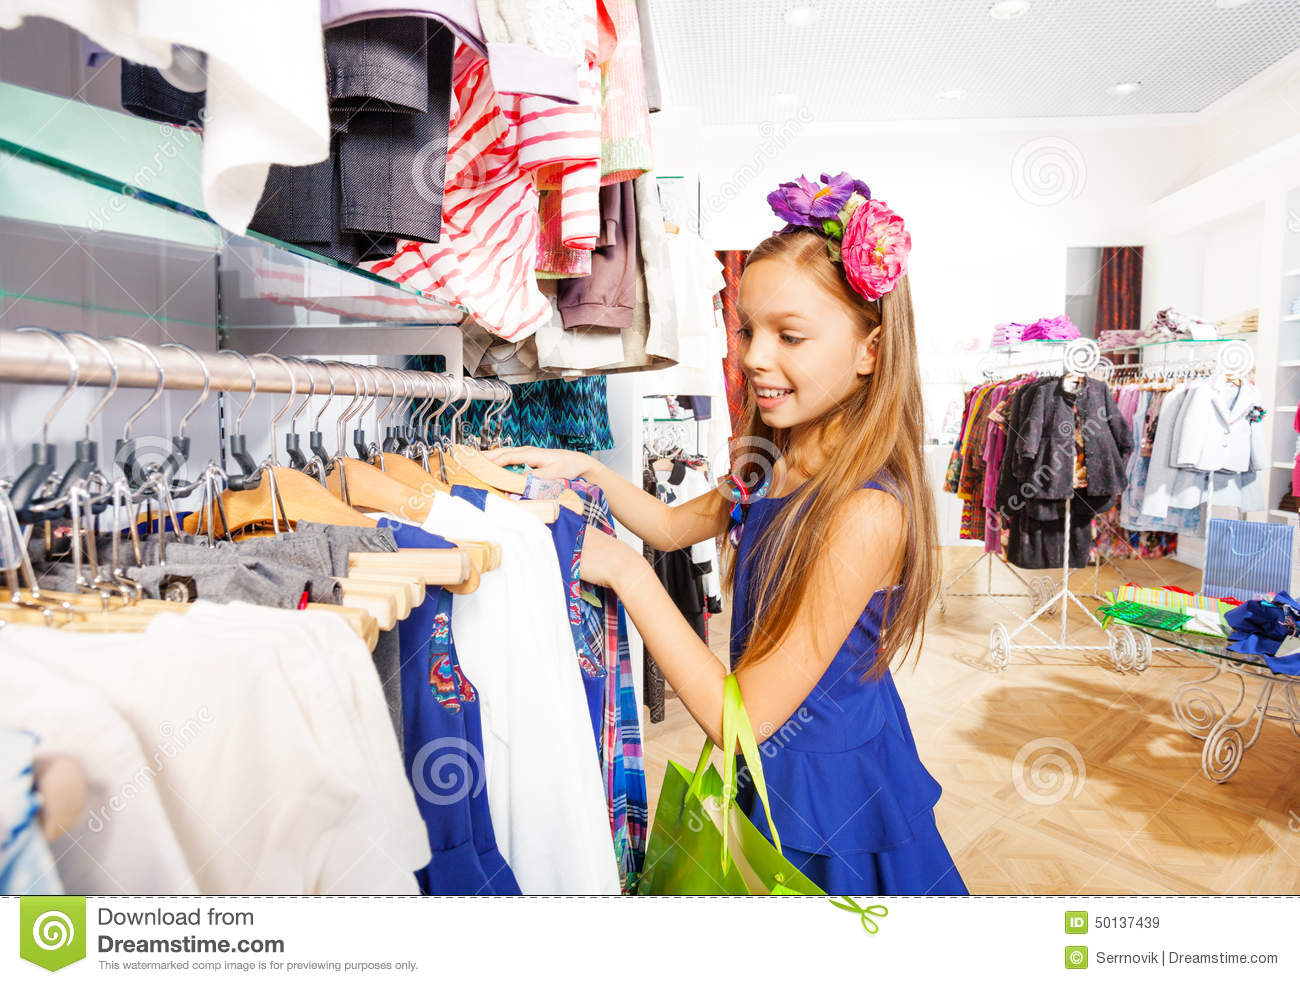 Pretty girls clothing store. Clothes stores